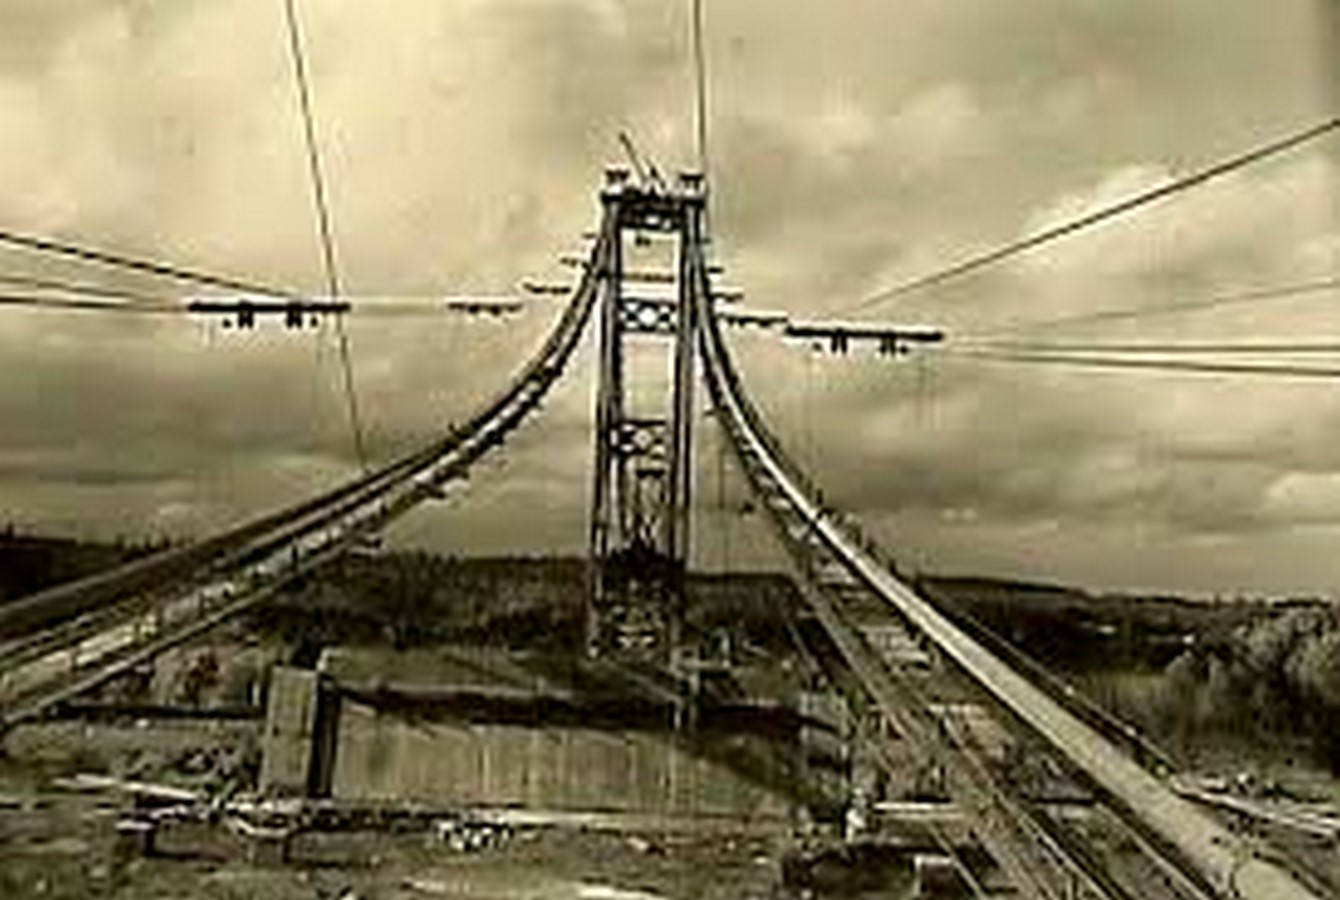 10 Things you did not know about the Tacoma Narrows Bridge - Sheet2